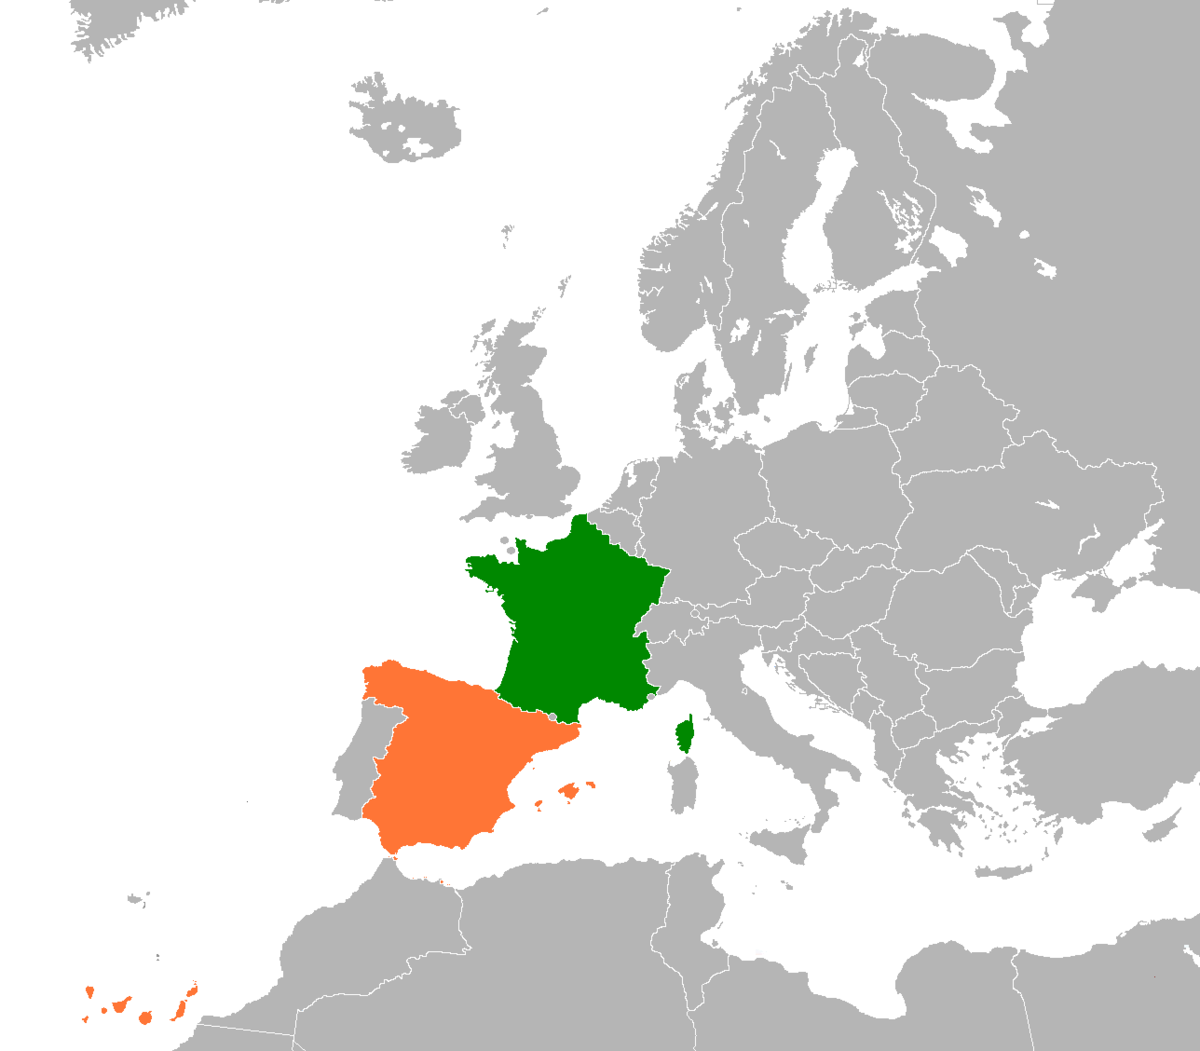 Francespain relations wikipedia gumiabroncs Choice Image